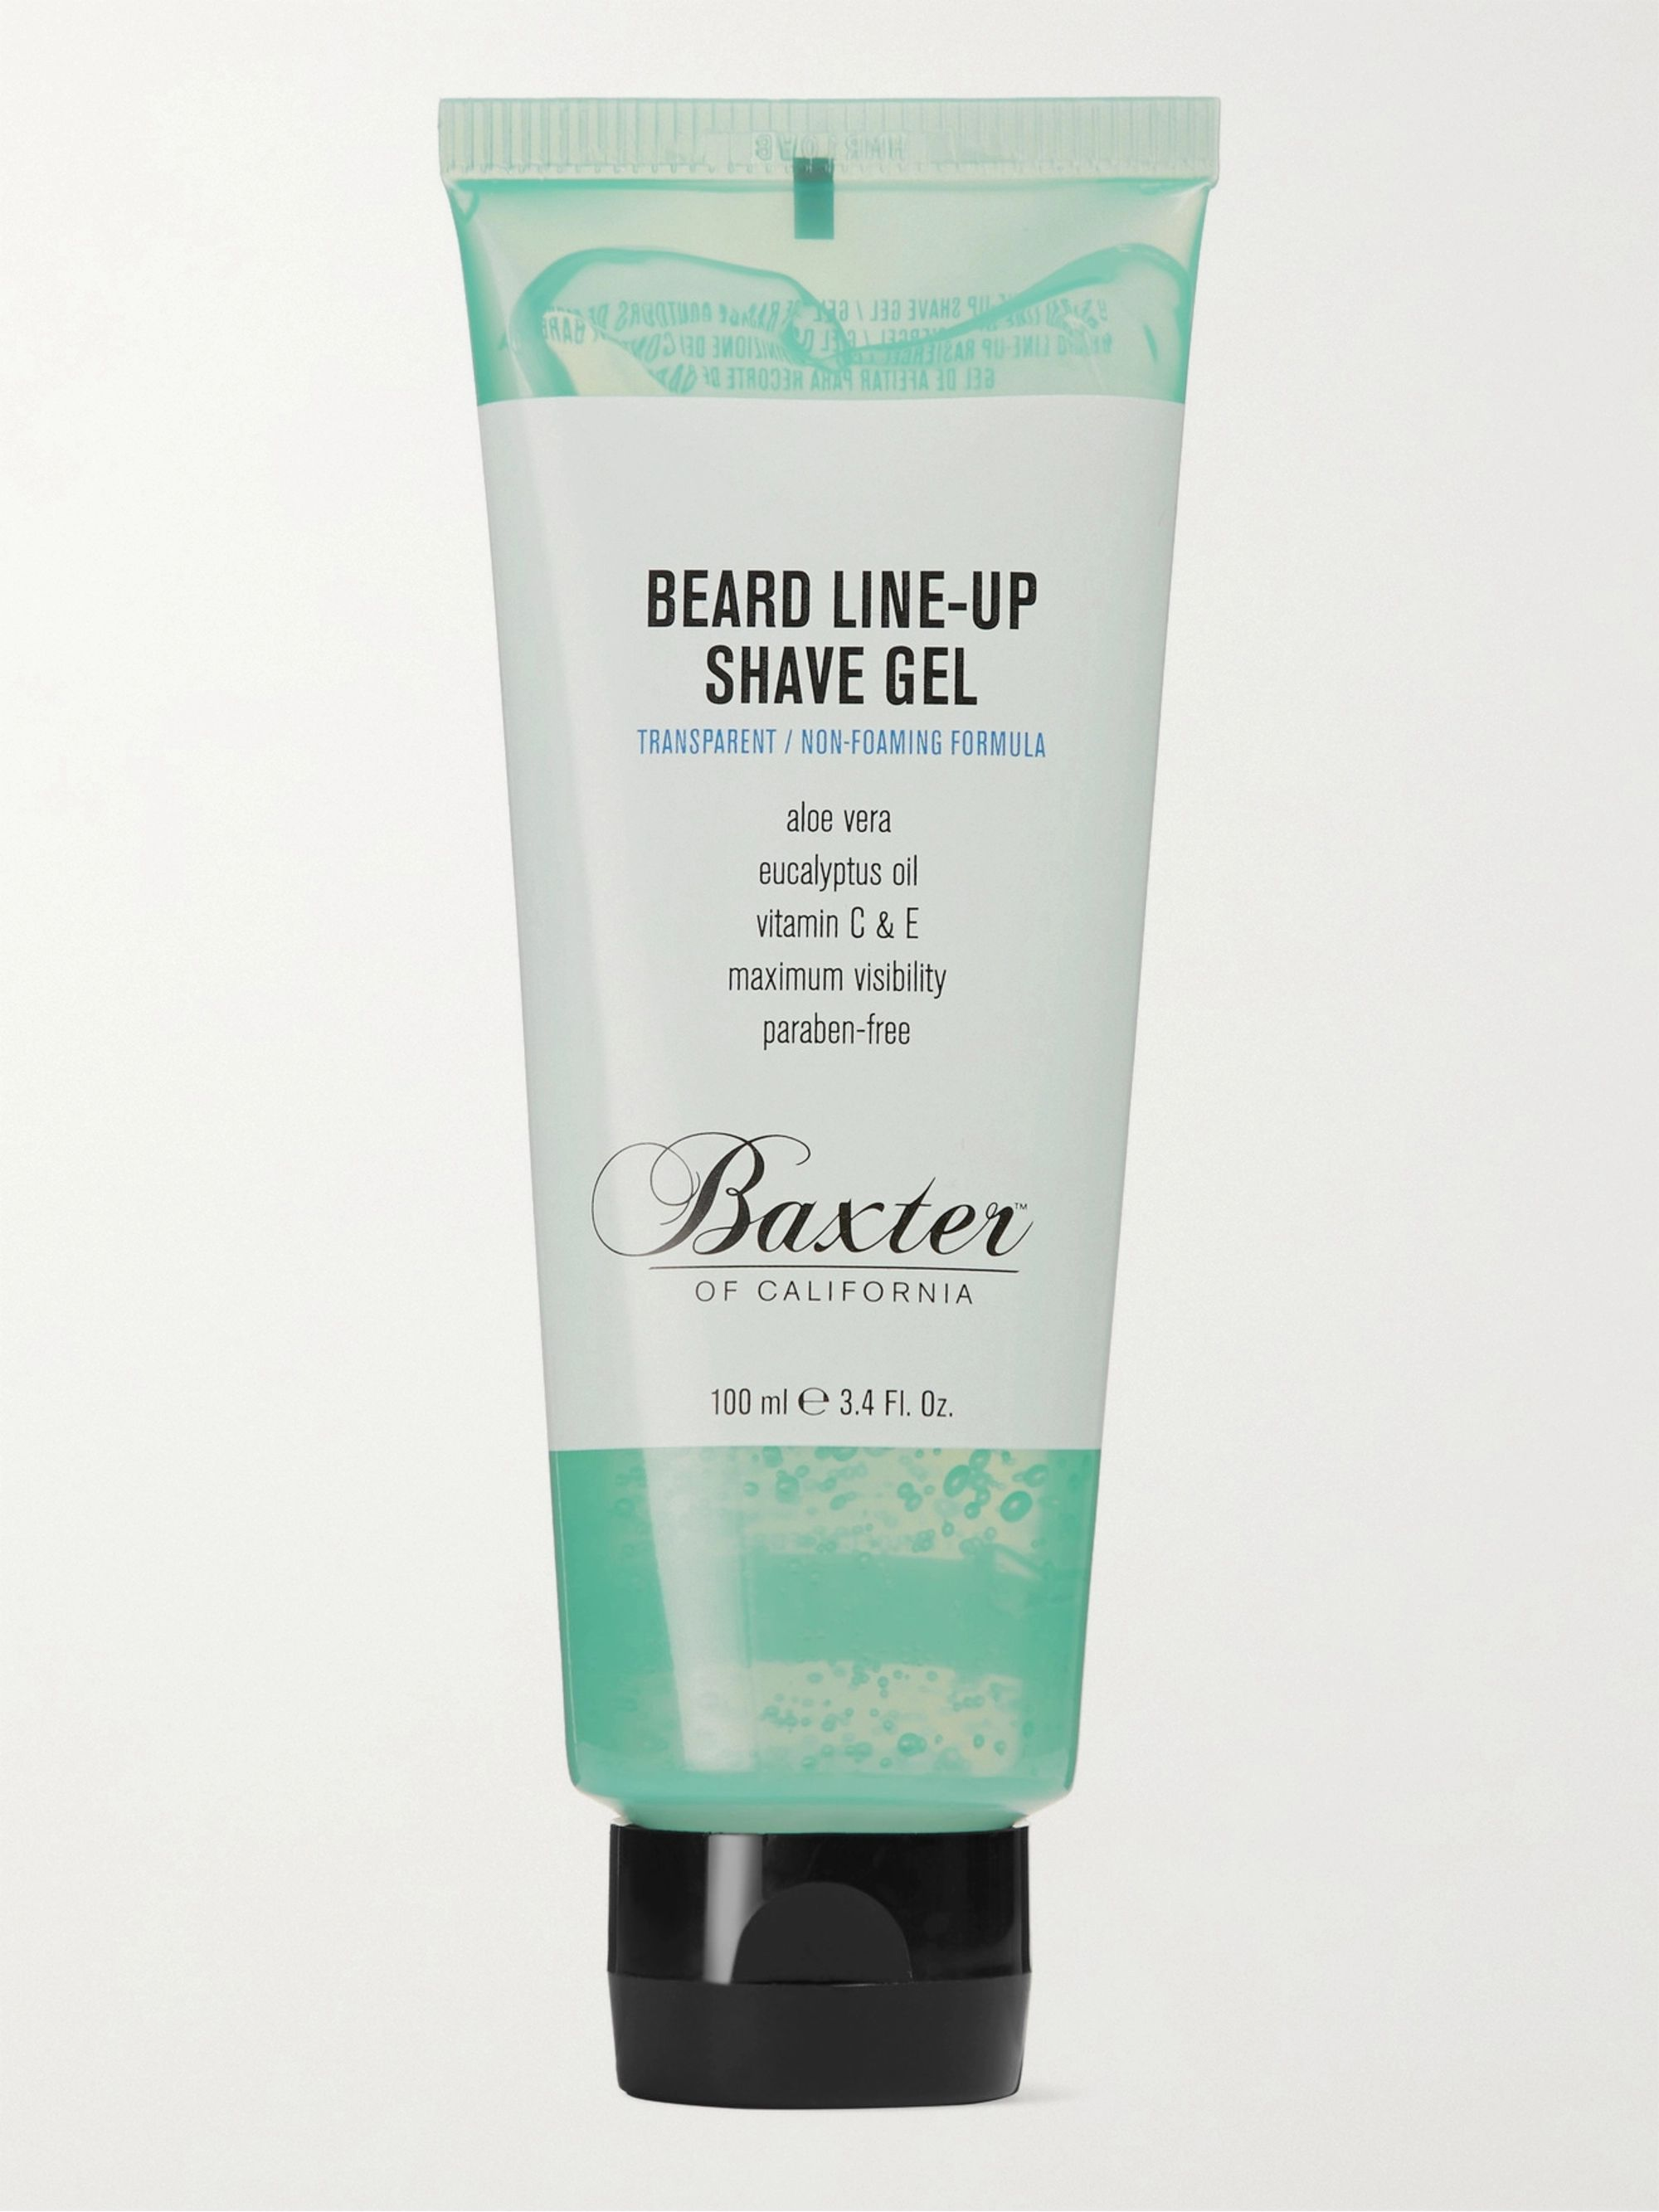 Baxter of California Beard Line-Up Shave Gel, 100ml